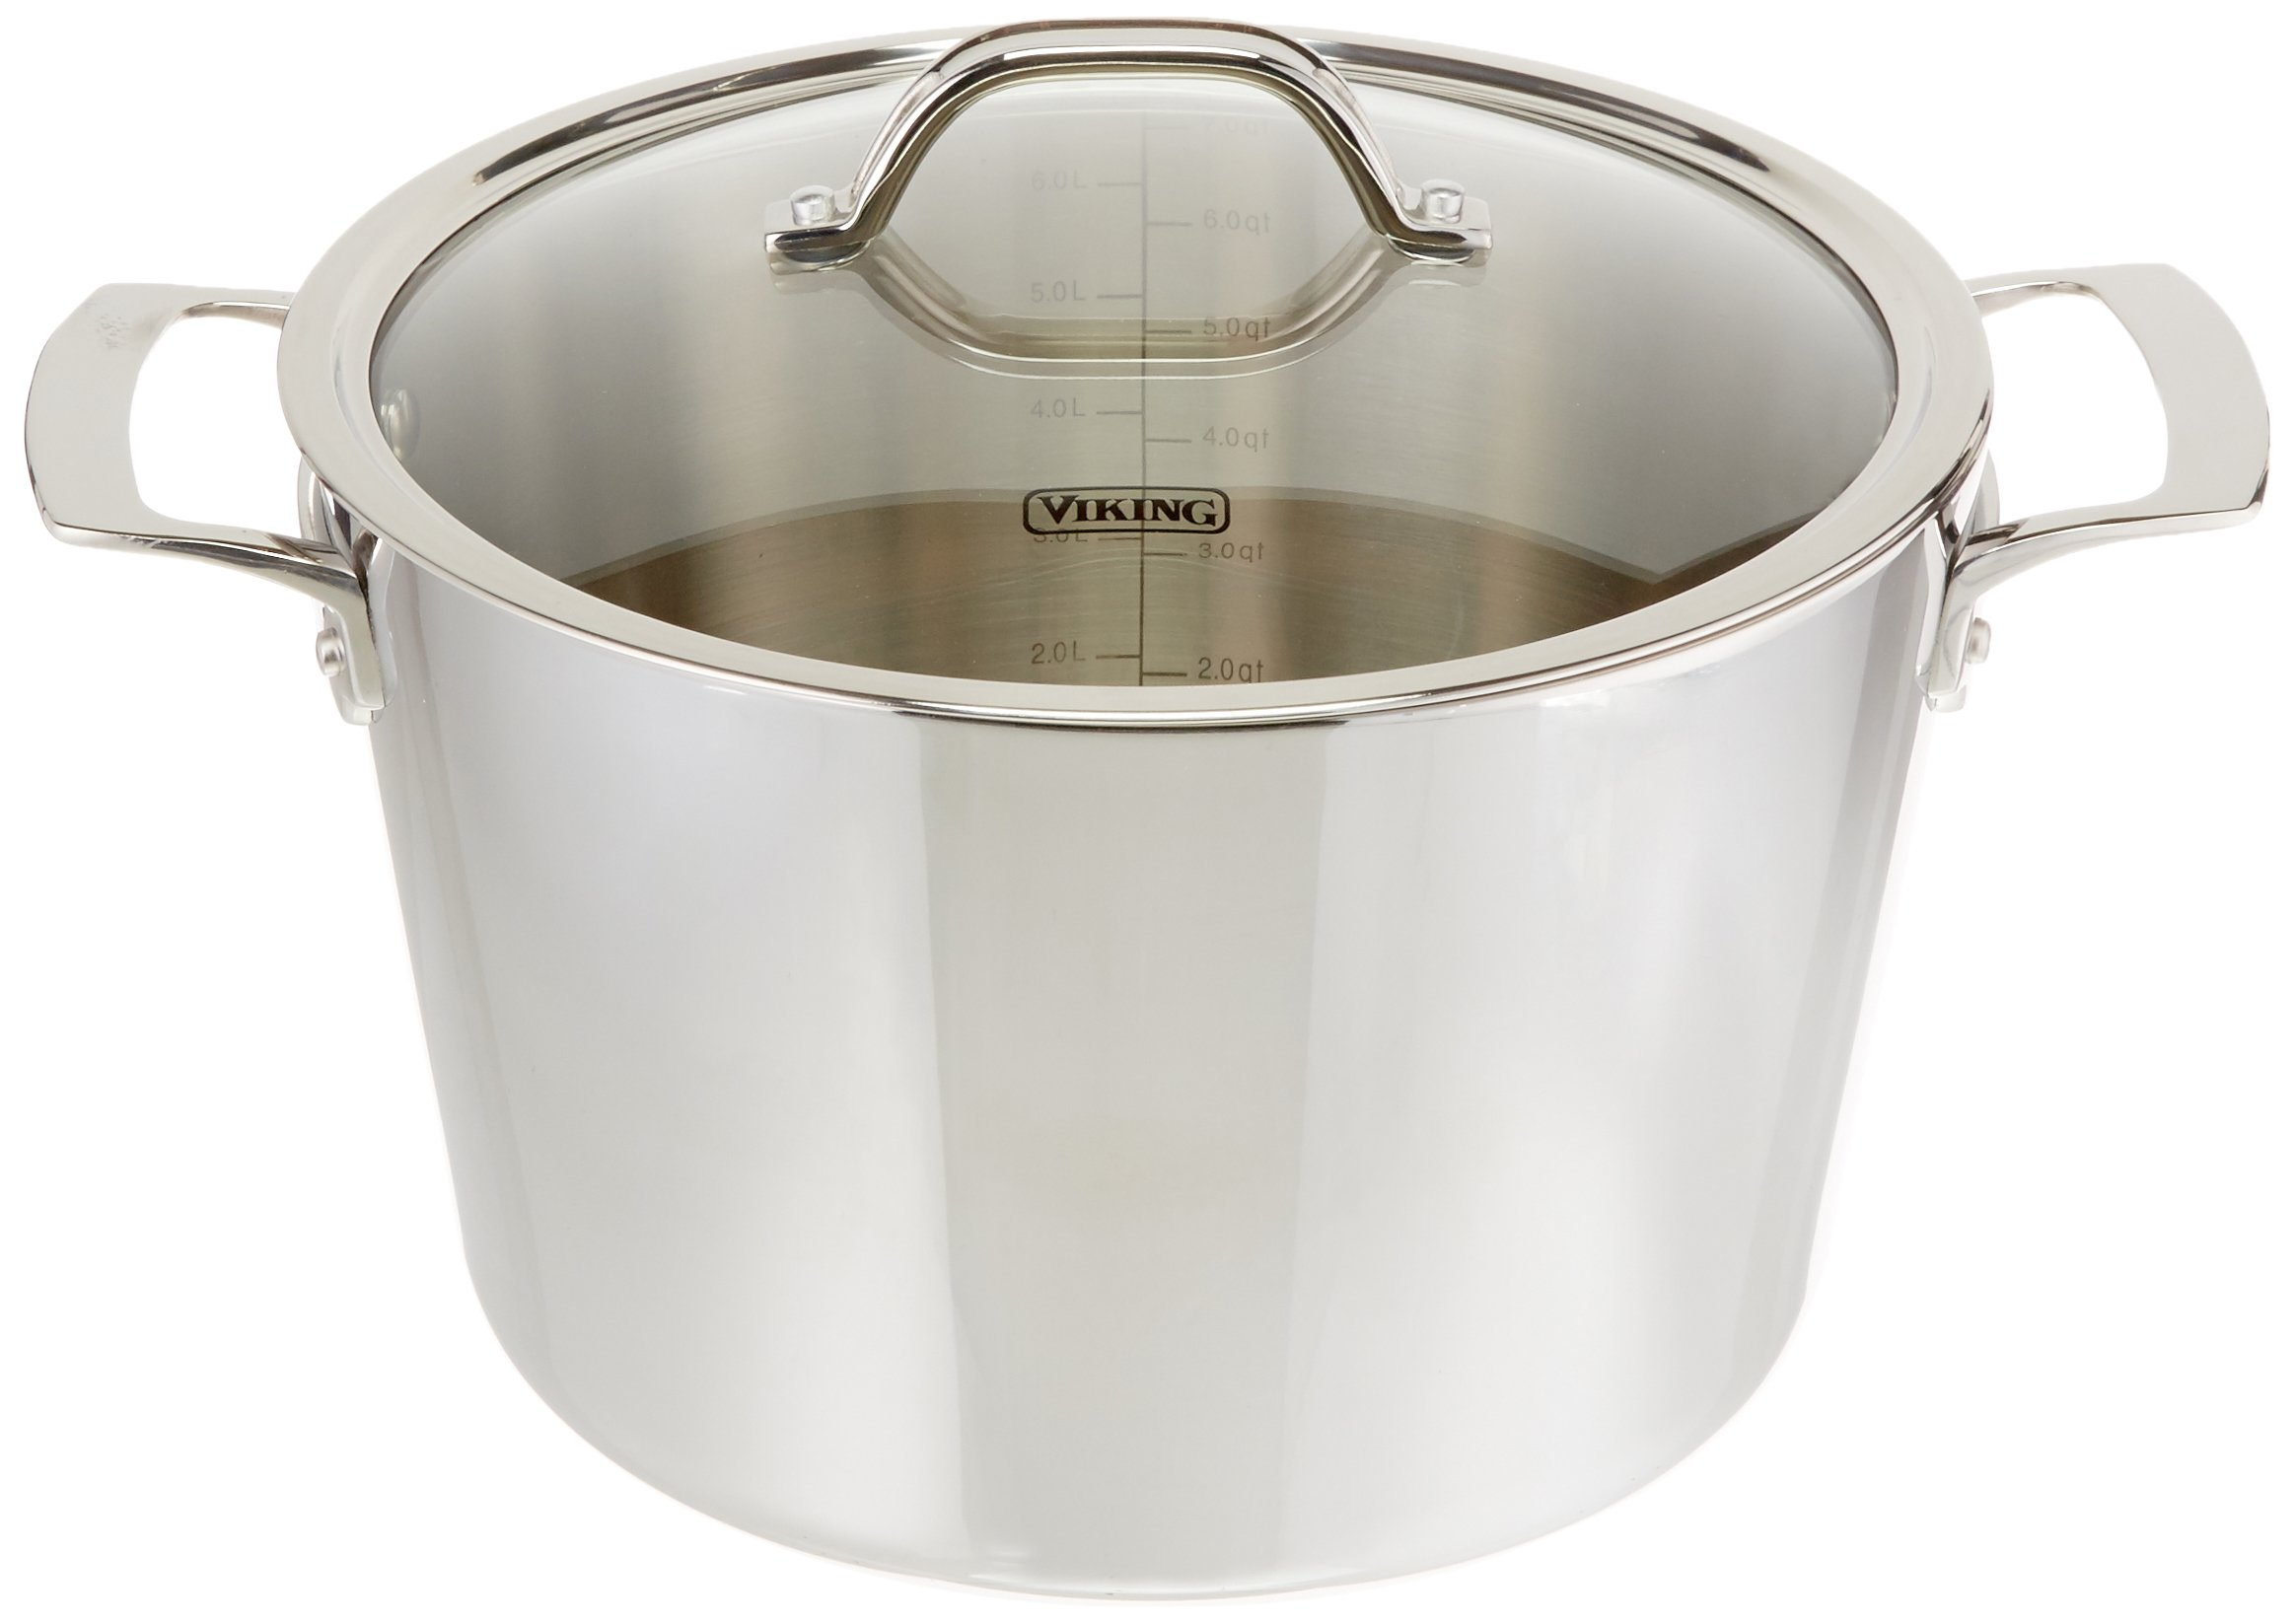 Viking Contemporary 3-Ply Stainless Steel Stockpot with Lid, 8 Quart